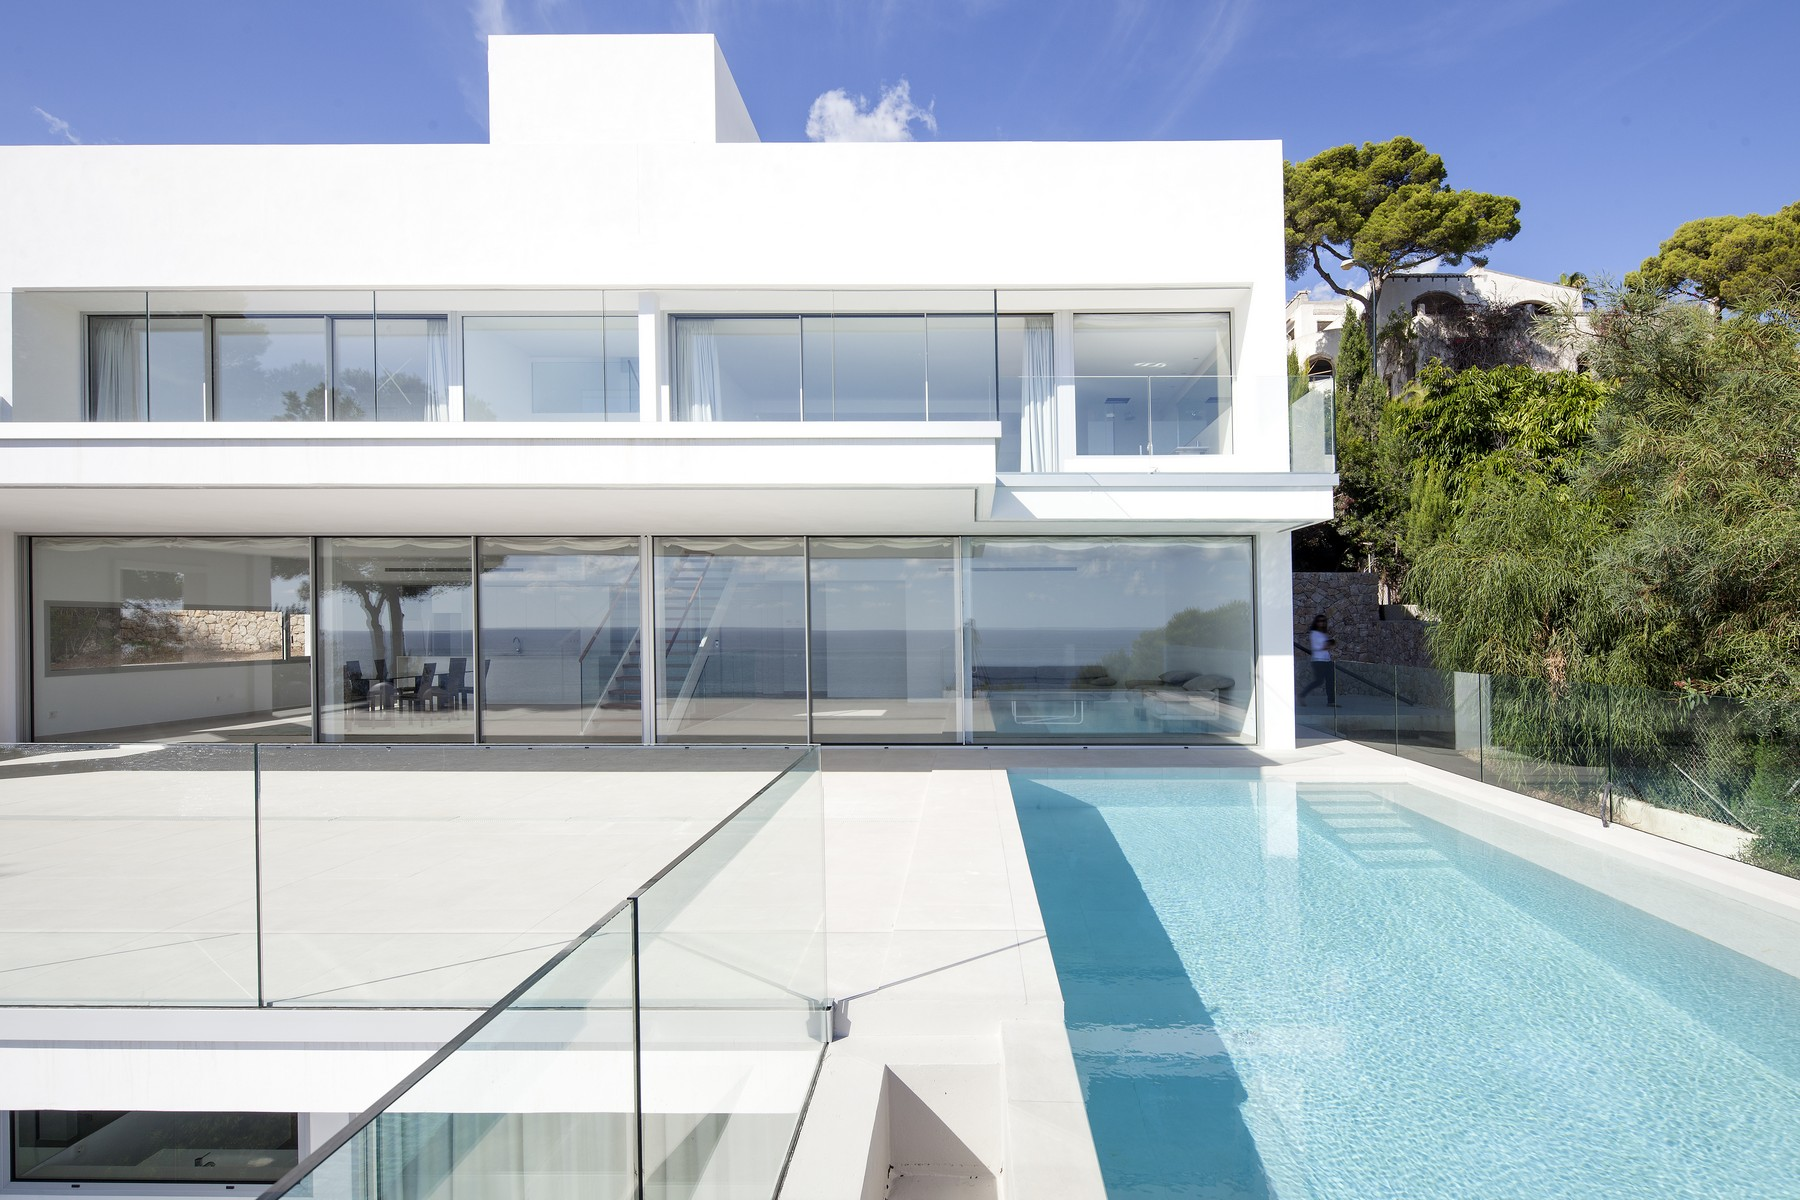 Single Family Home for Sale at Modern House in Cala Provensals for sale, Capdepera, Palma Capdepera, Mallorca, Spain